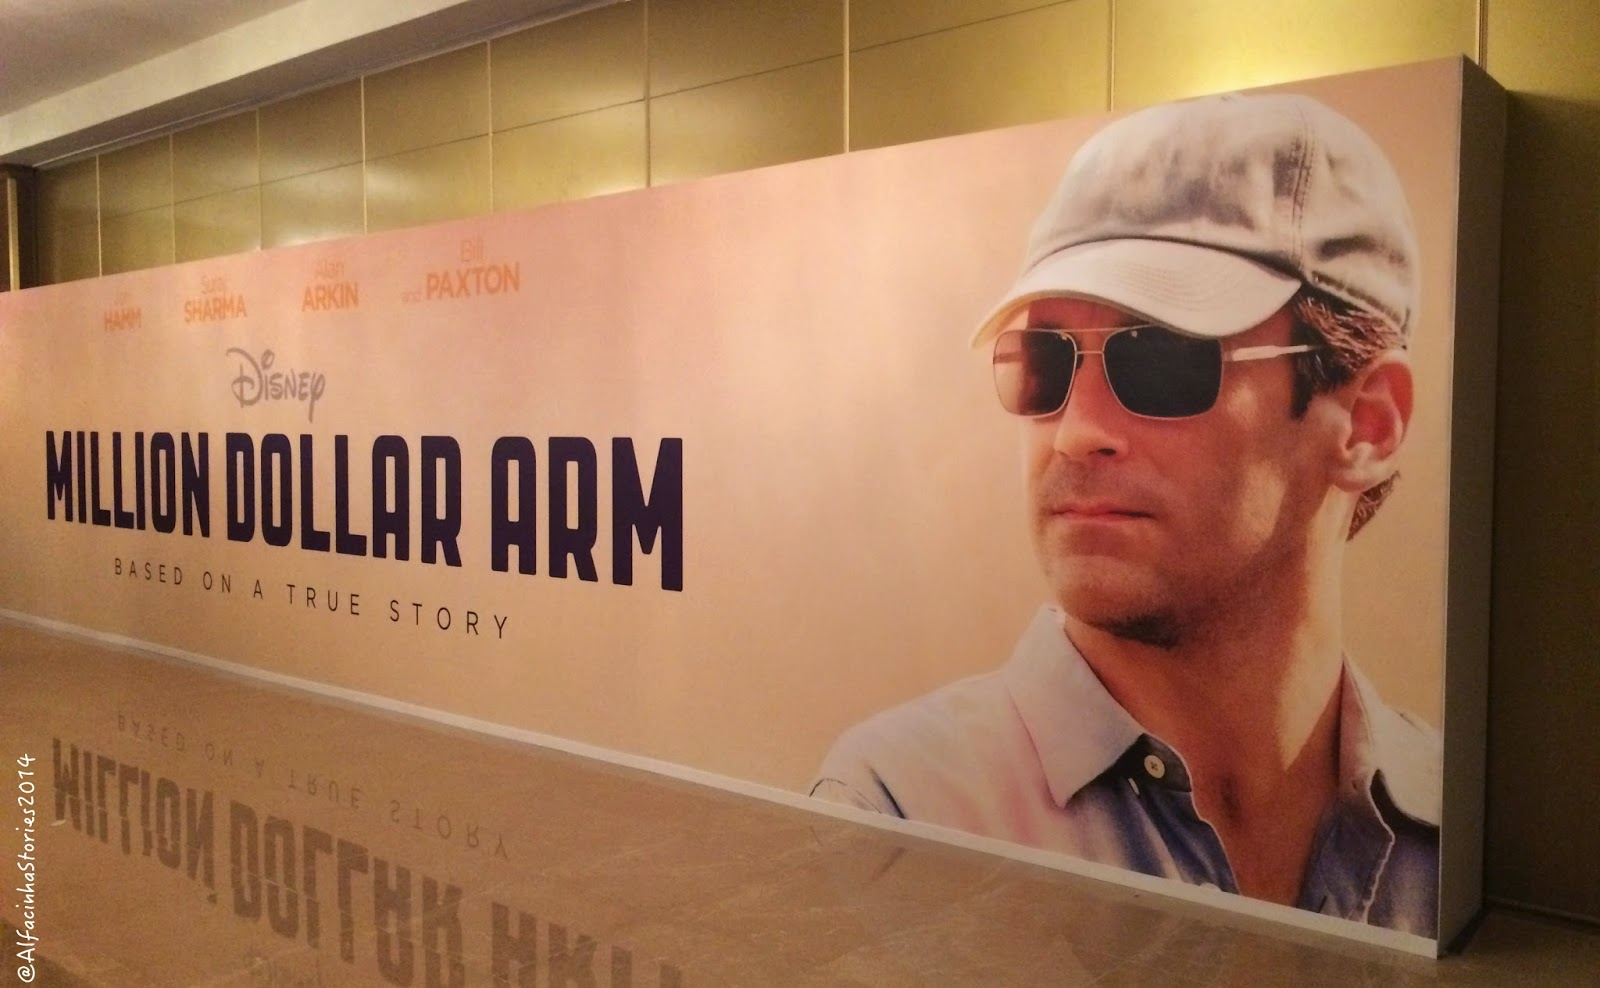 Million Dollar Arm & Jon Hamm!